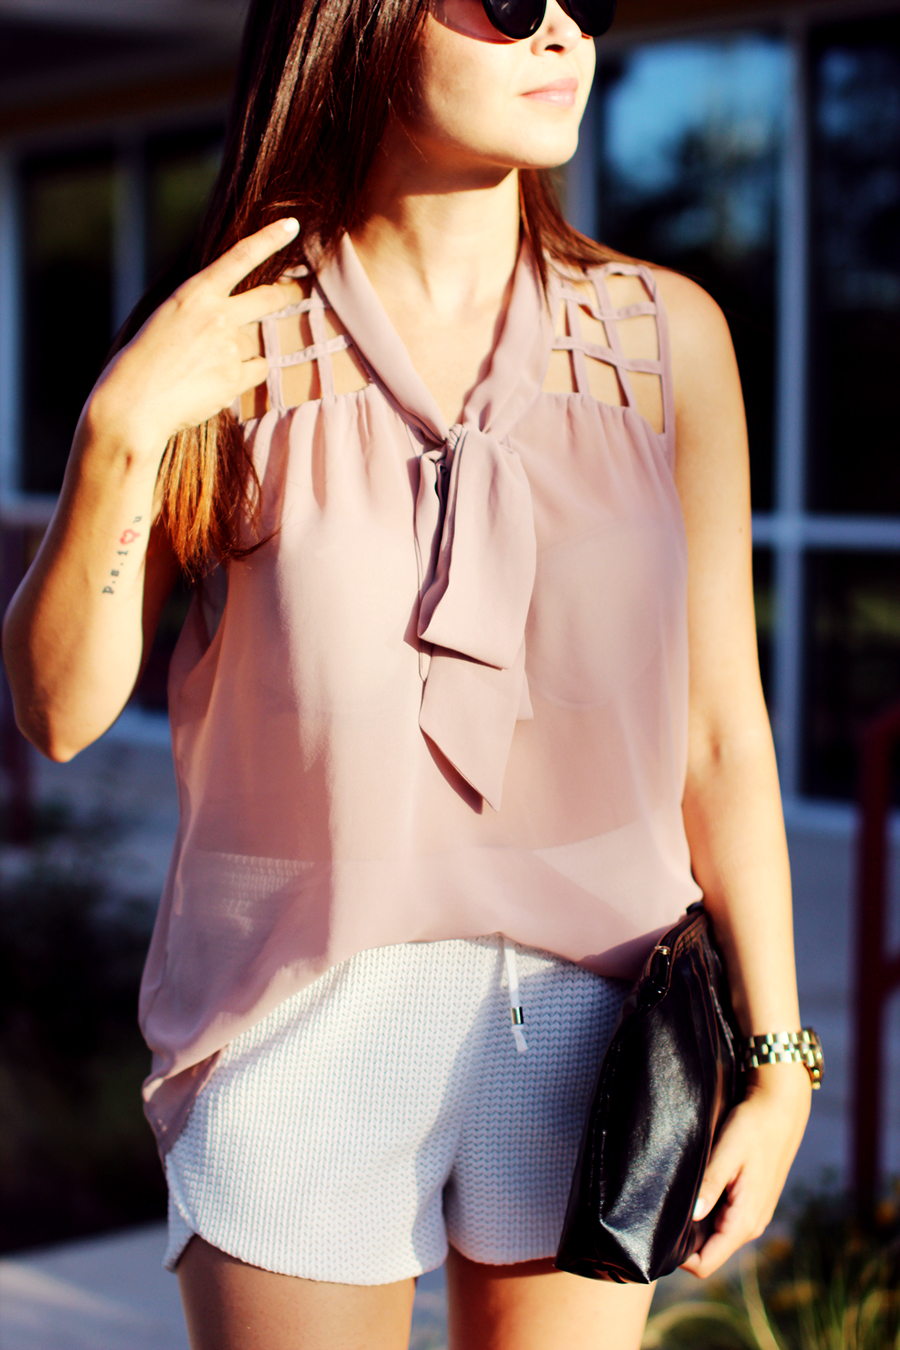 WHITE-SHORTS-ATHLETIC-NEUTRALS-GLAM-STYLIST-CLASSIC-SUMMER-STYLE-FIXIN-TO-THRILL-AUSTIN-FASHION-BLOG-TEXAS-7